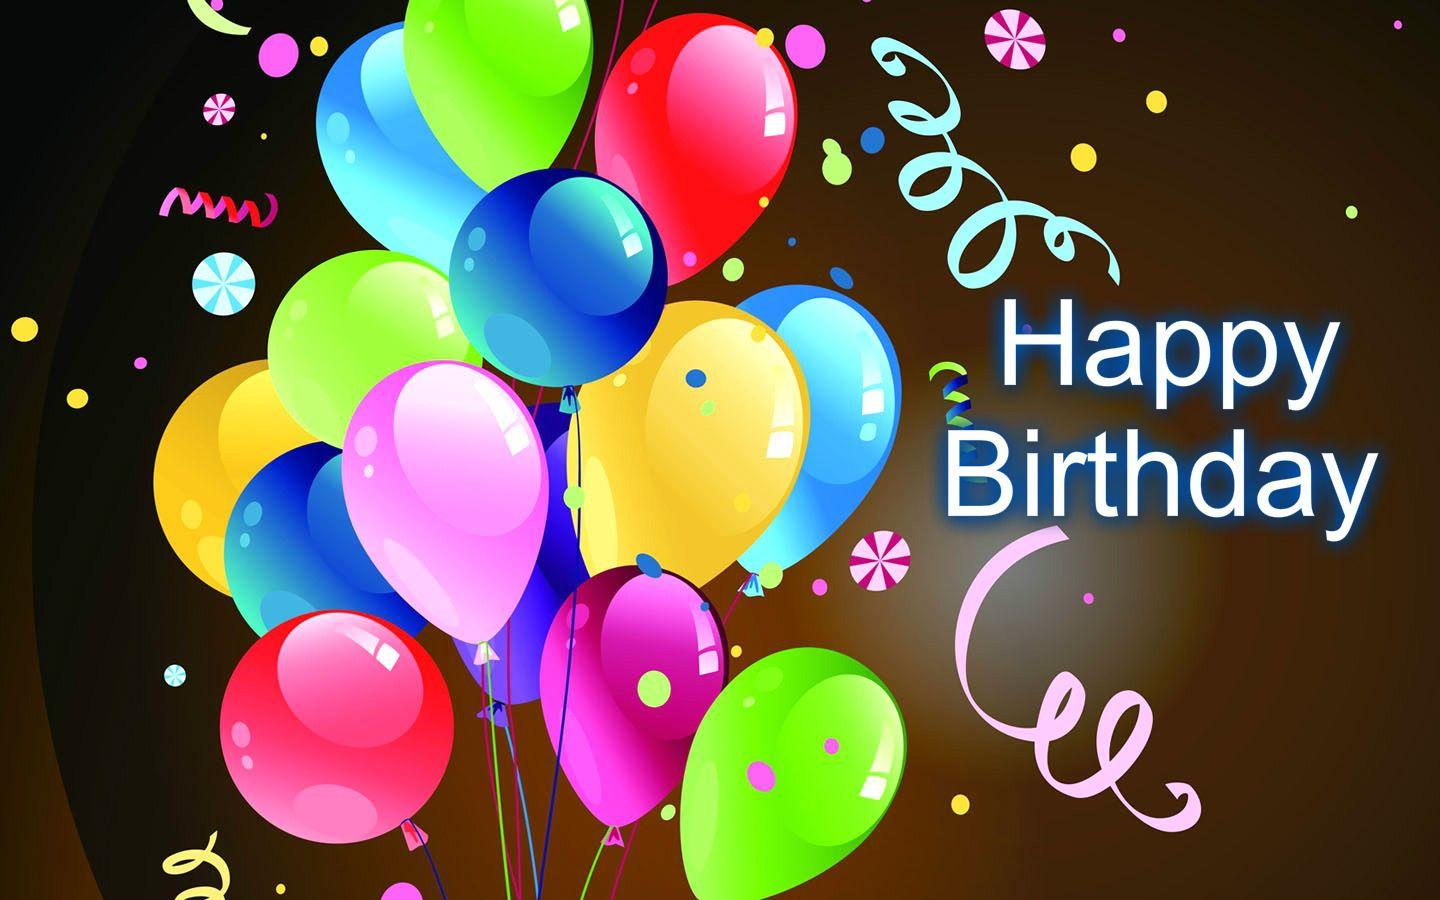 Happy Birthday HD Wallpapers Free Download